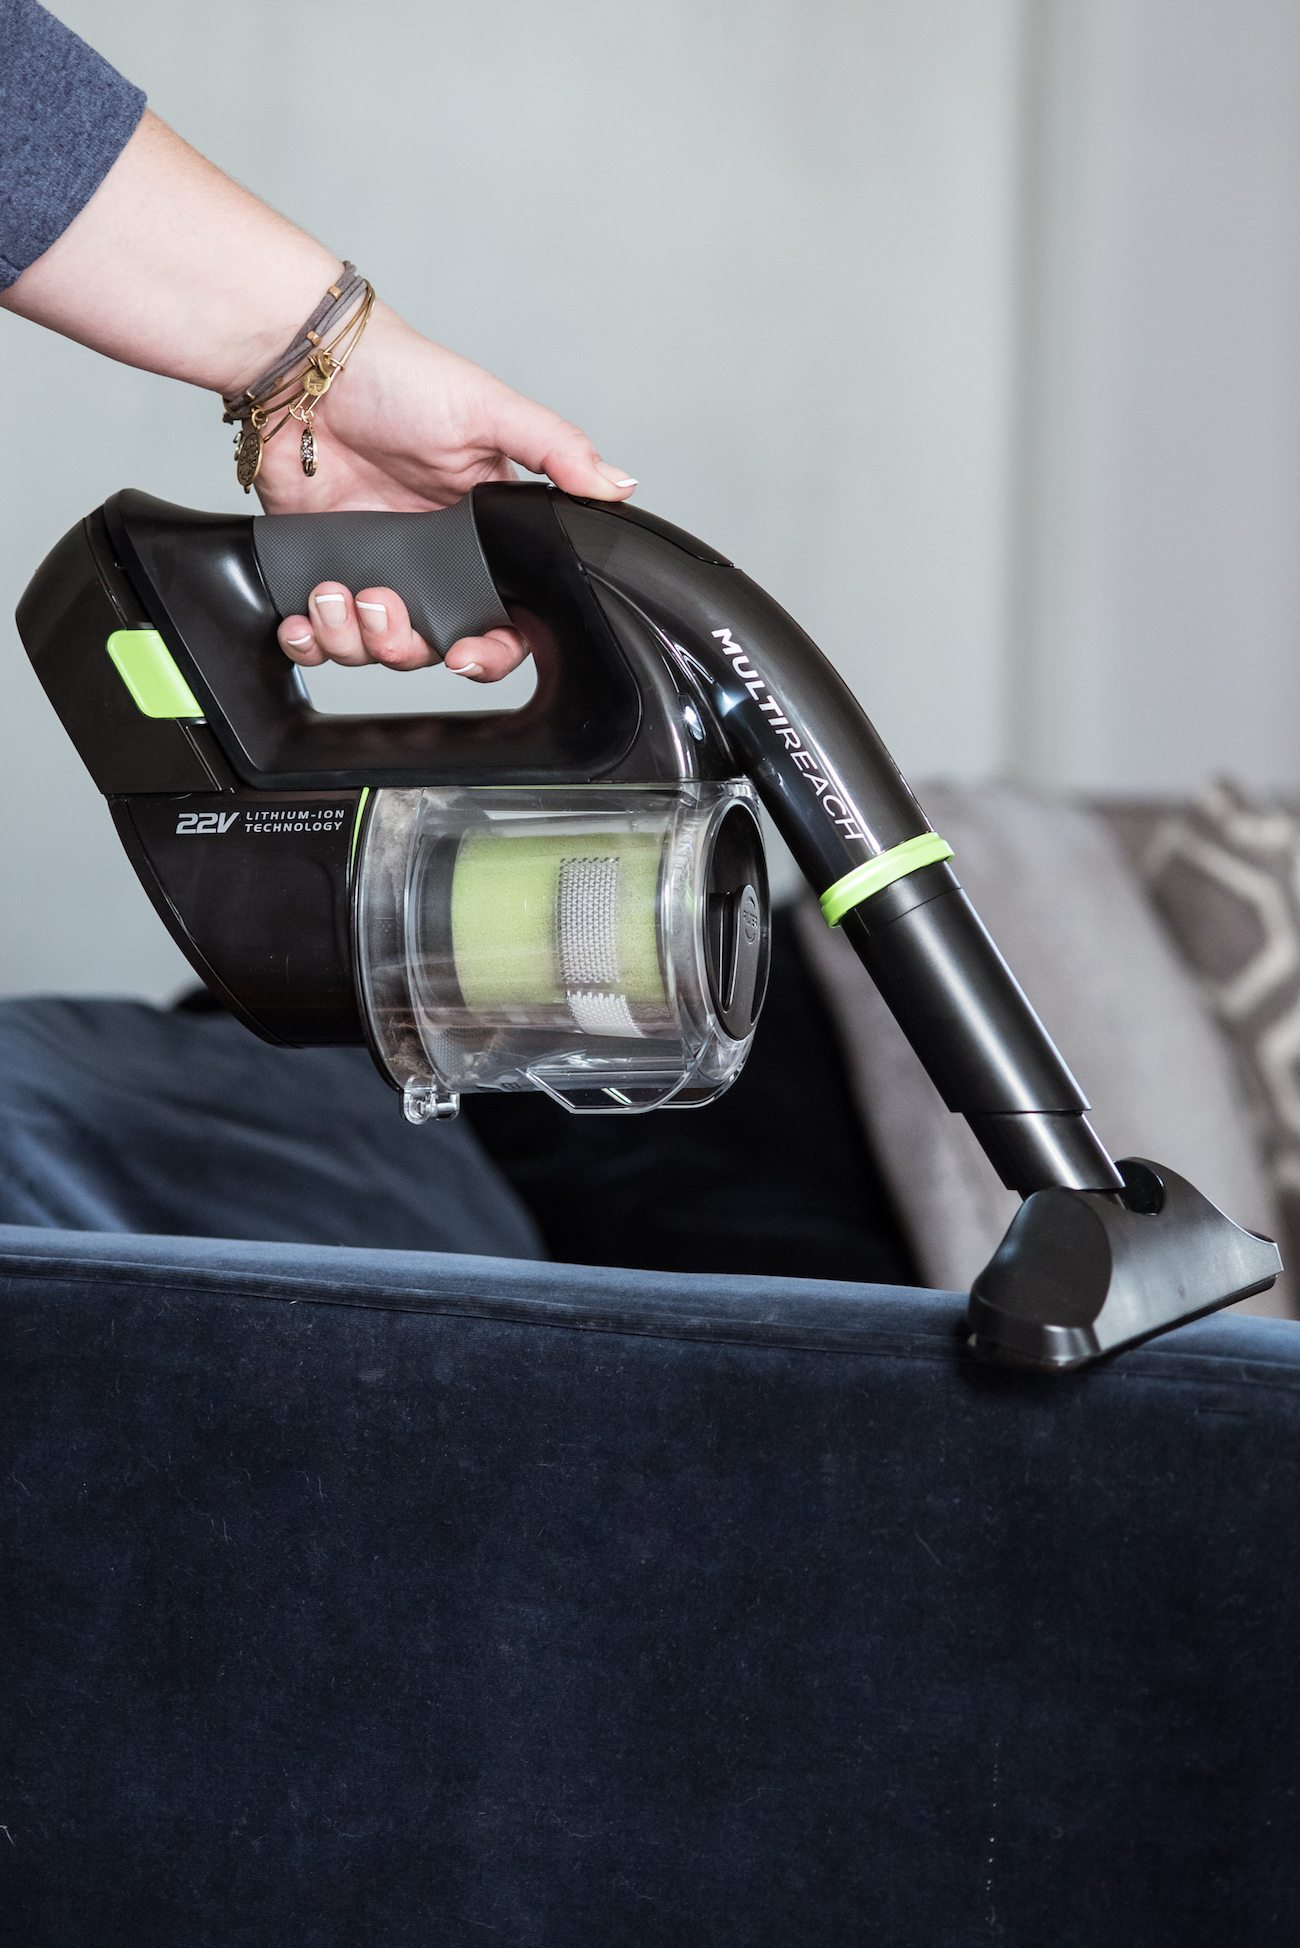 Bissell Multi Reach Cordless Vacuum Review | How to Prep Your Home for the Holidays | Holiday entertaining ideas, entertaining tips, party ideas, party appetizers and more from @cydconverse